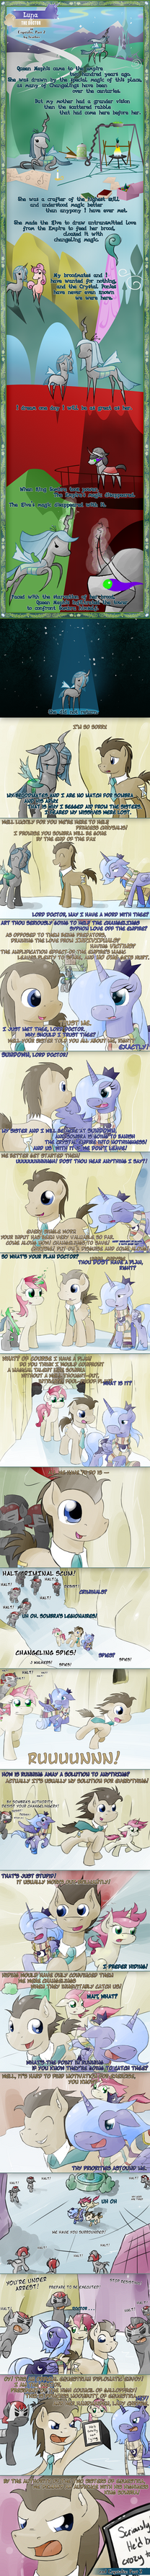 Luna and the Doctor - Crystalis, Part 2 (Complete)